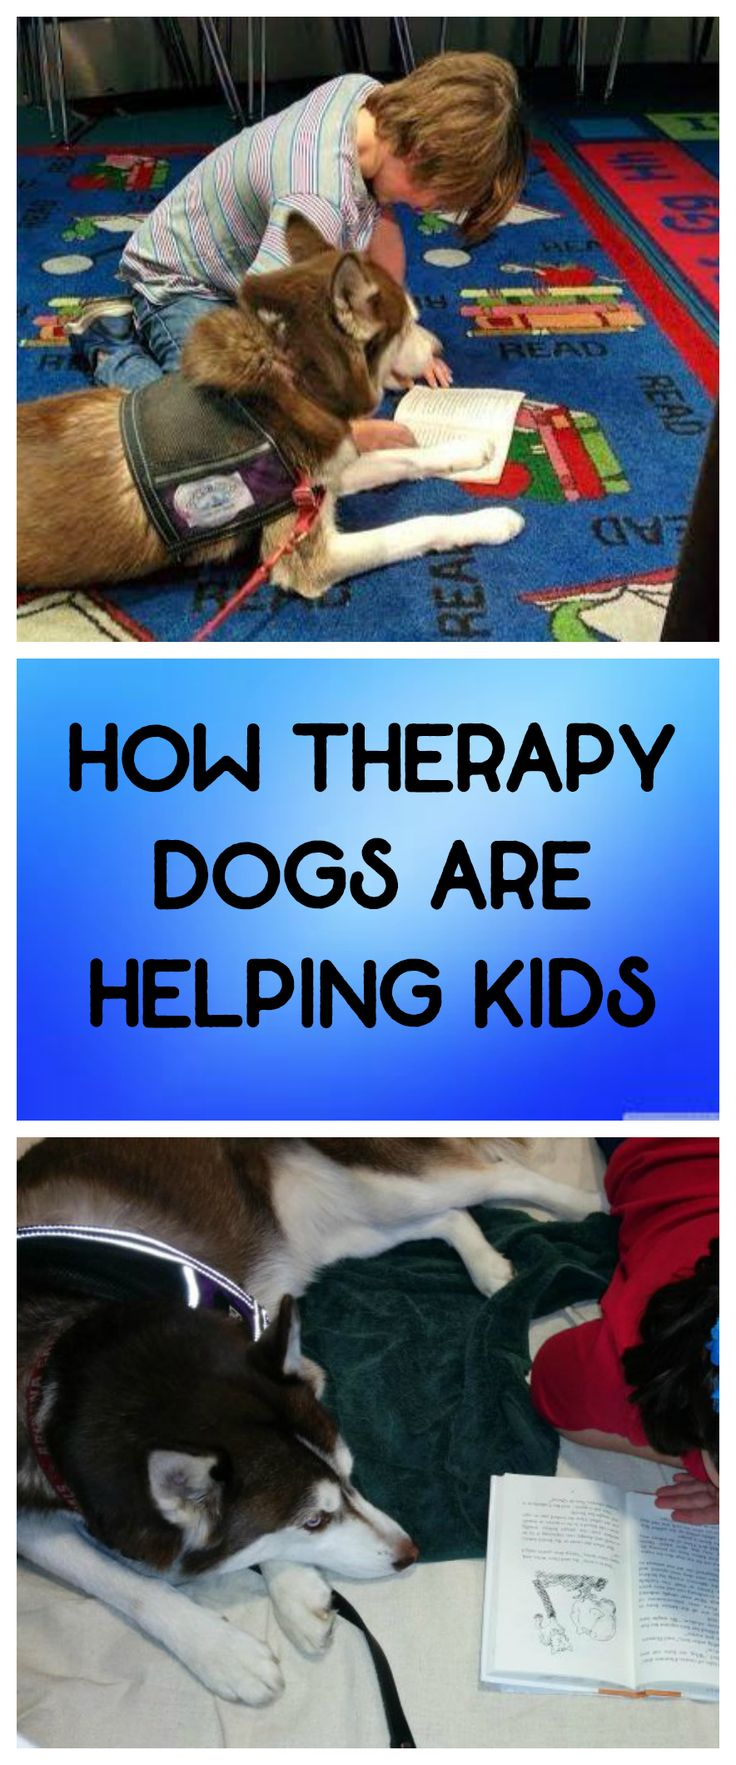 See how therapy dogs are helping kids.